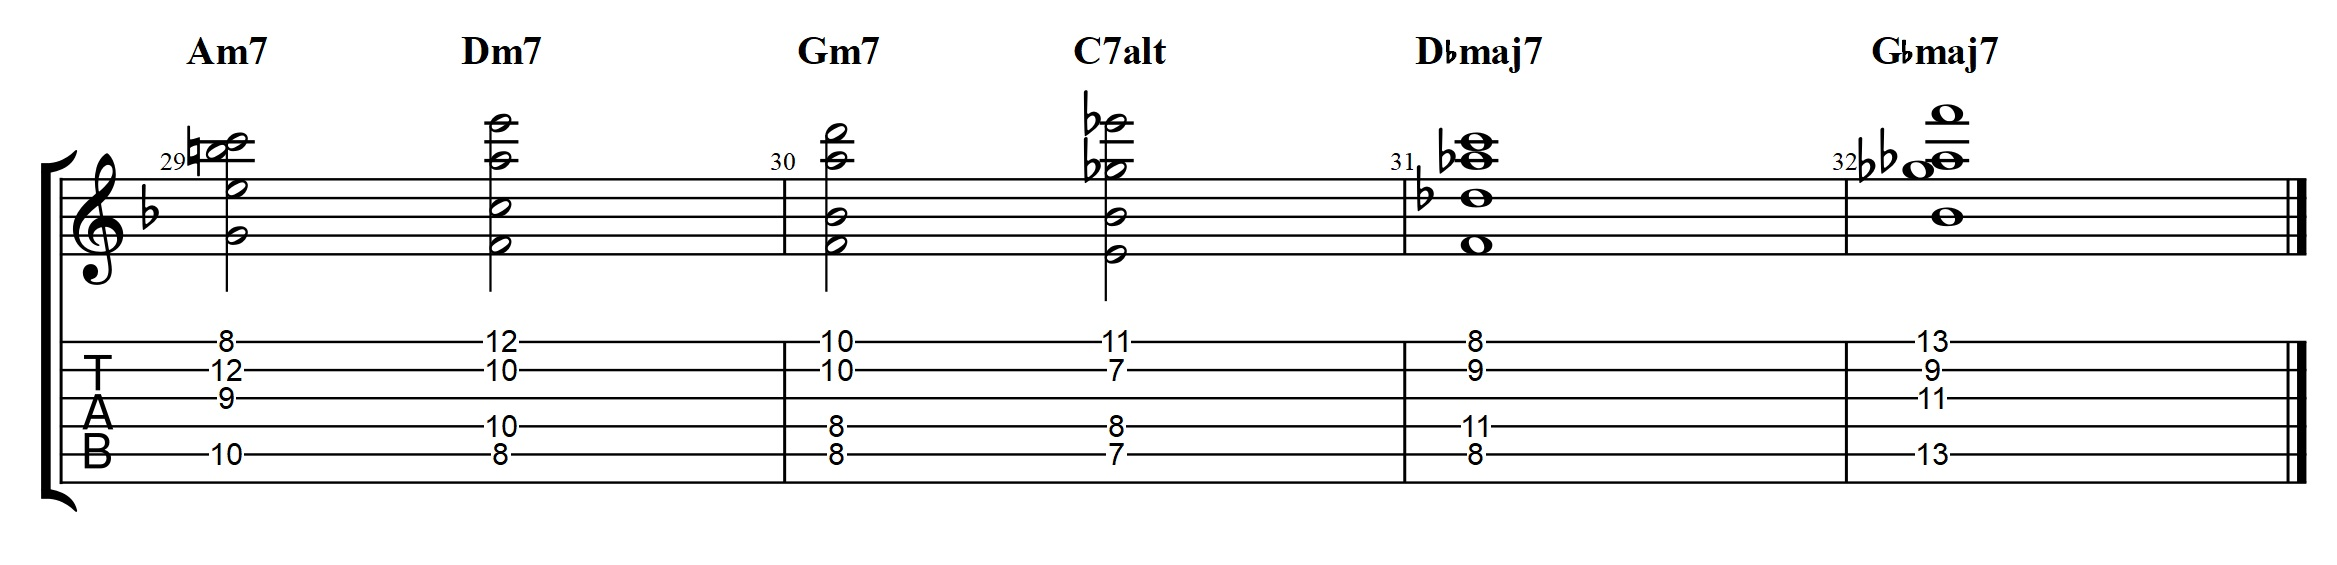 Allan holdsworth chords archives jens larsen drop3 voicing i also used on gm7 and a gbmaj7 that is voiced with the chord i also started with this also makes it easy to loop the whole progression hexwebz Choice Image